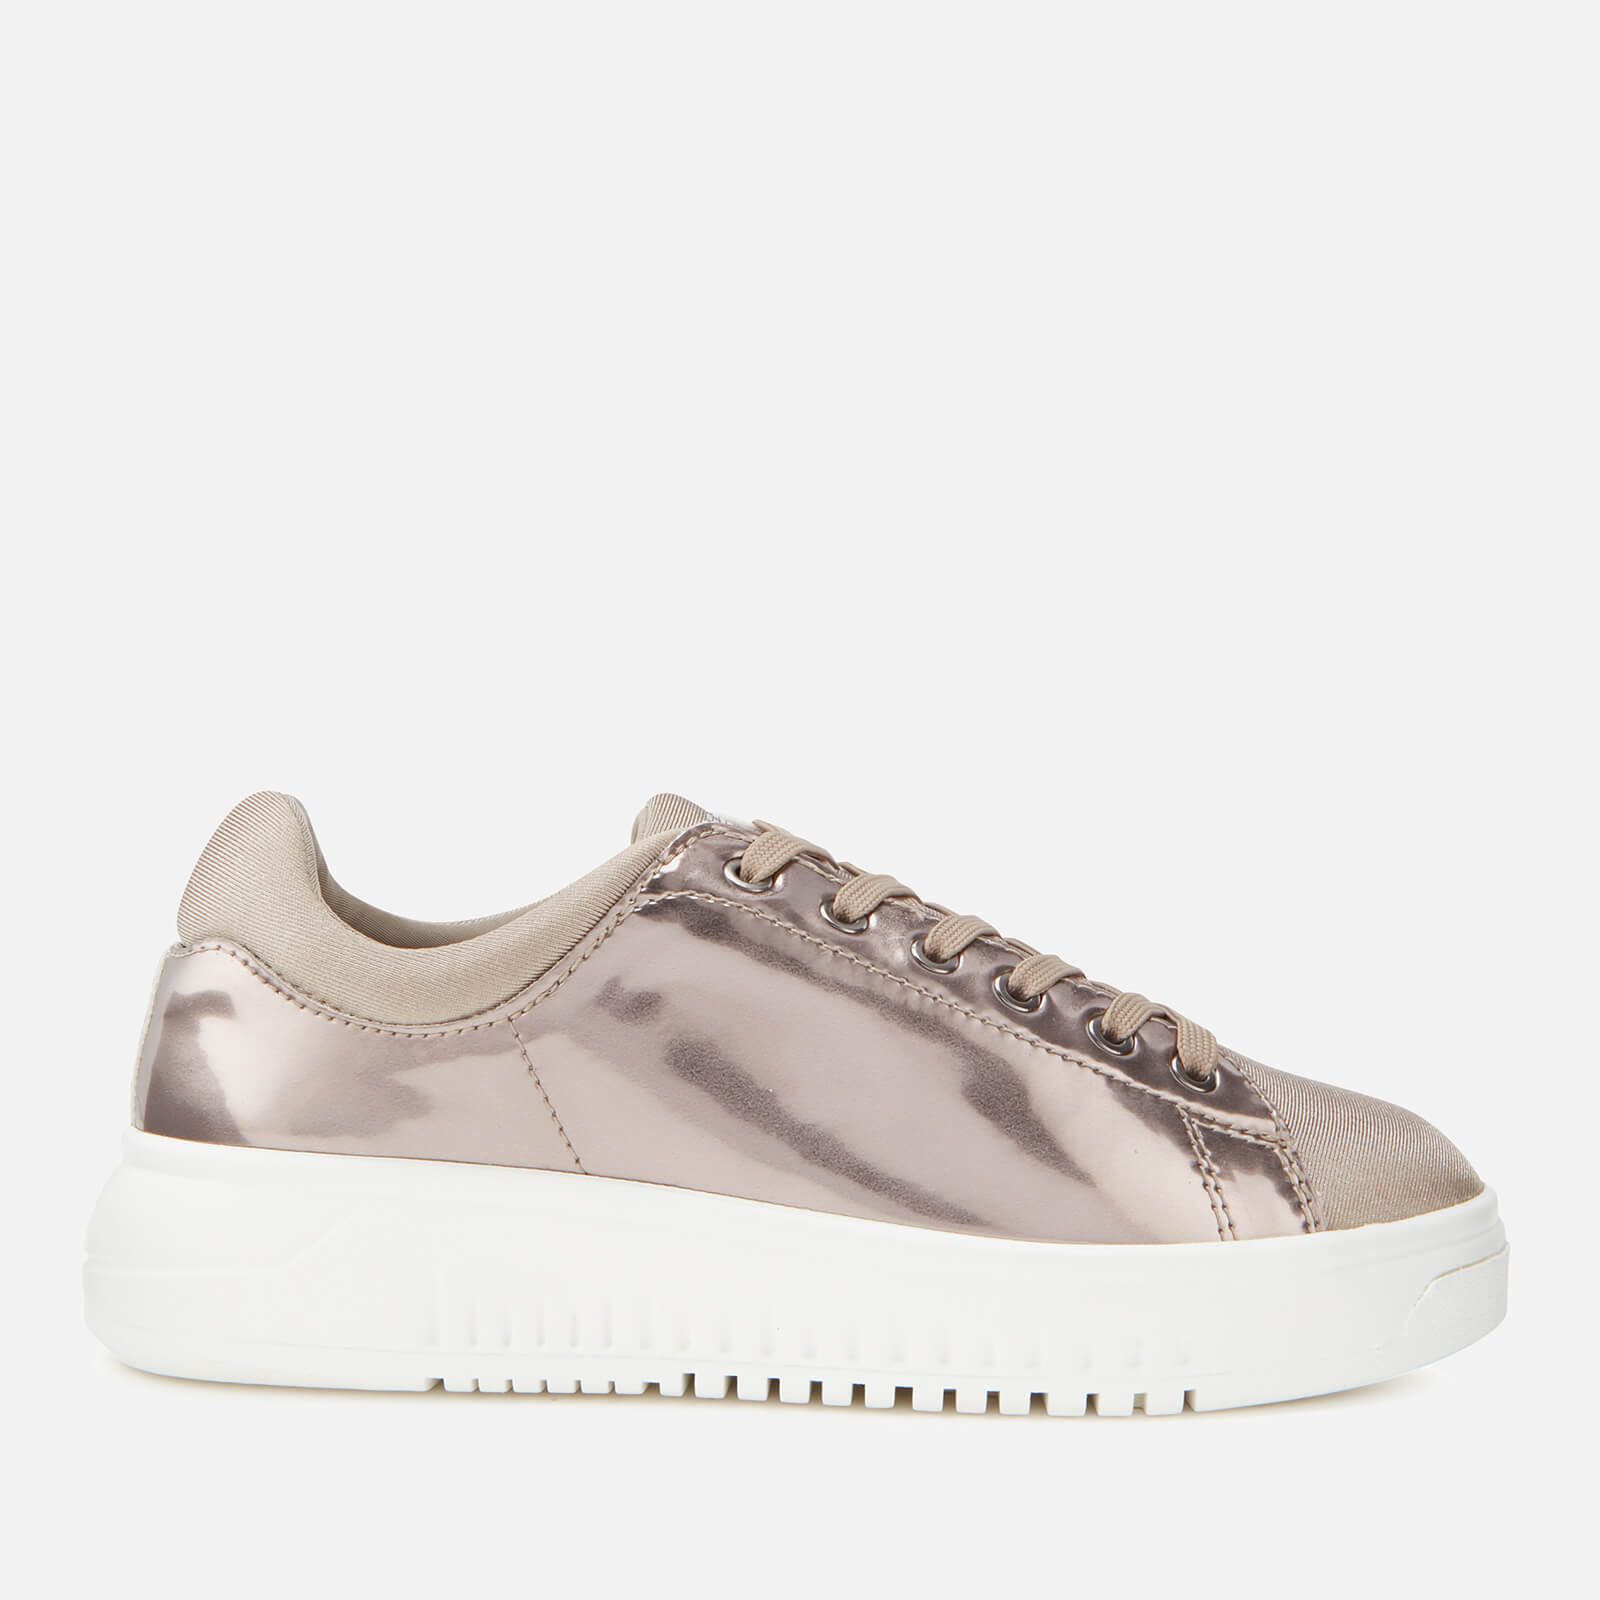 Emporio Armani Women's Icon Mirror Flatform Trainers - Porpoise/Desert Taupe - UK 5 - Gold